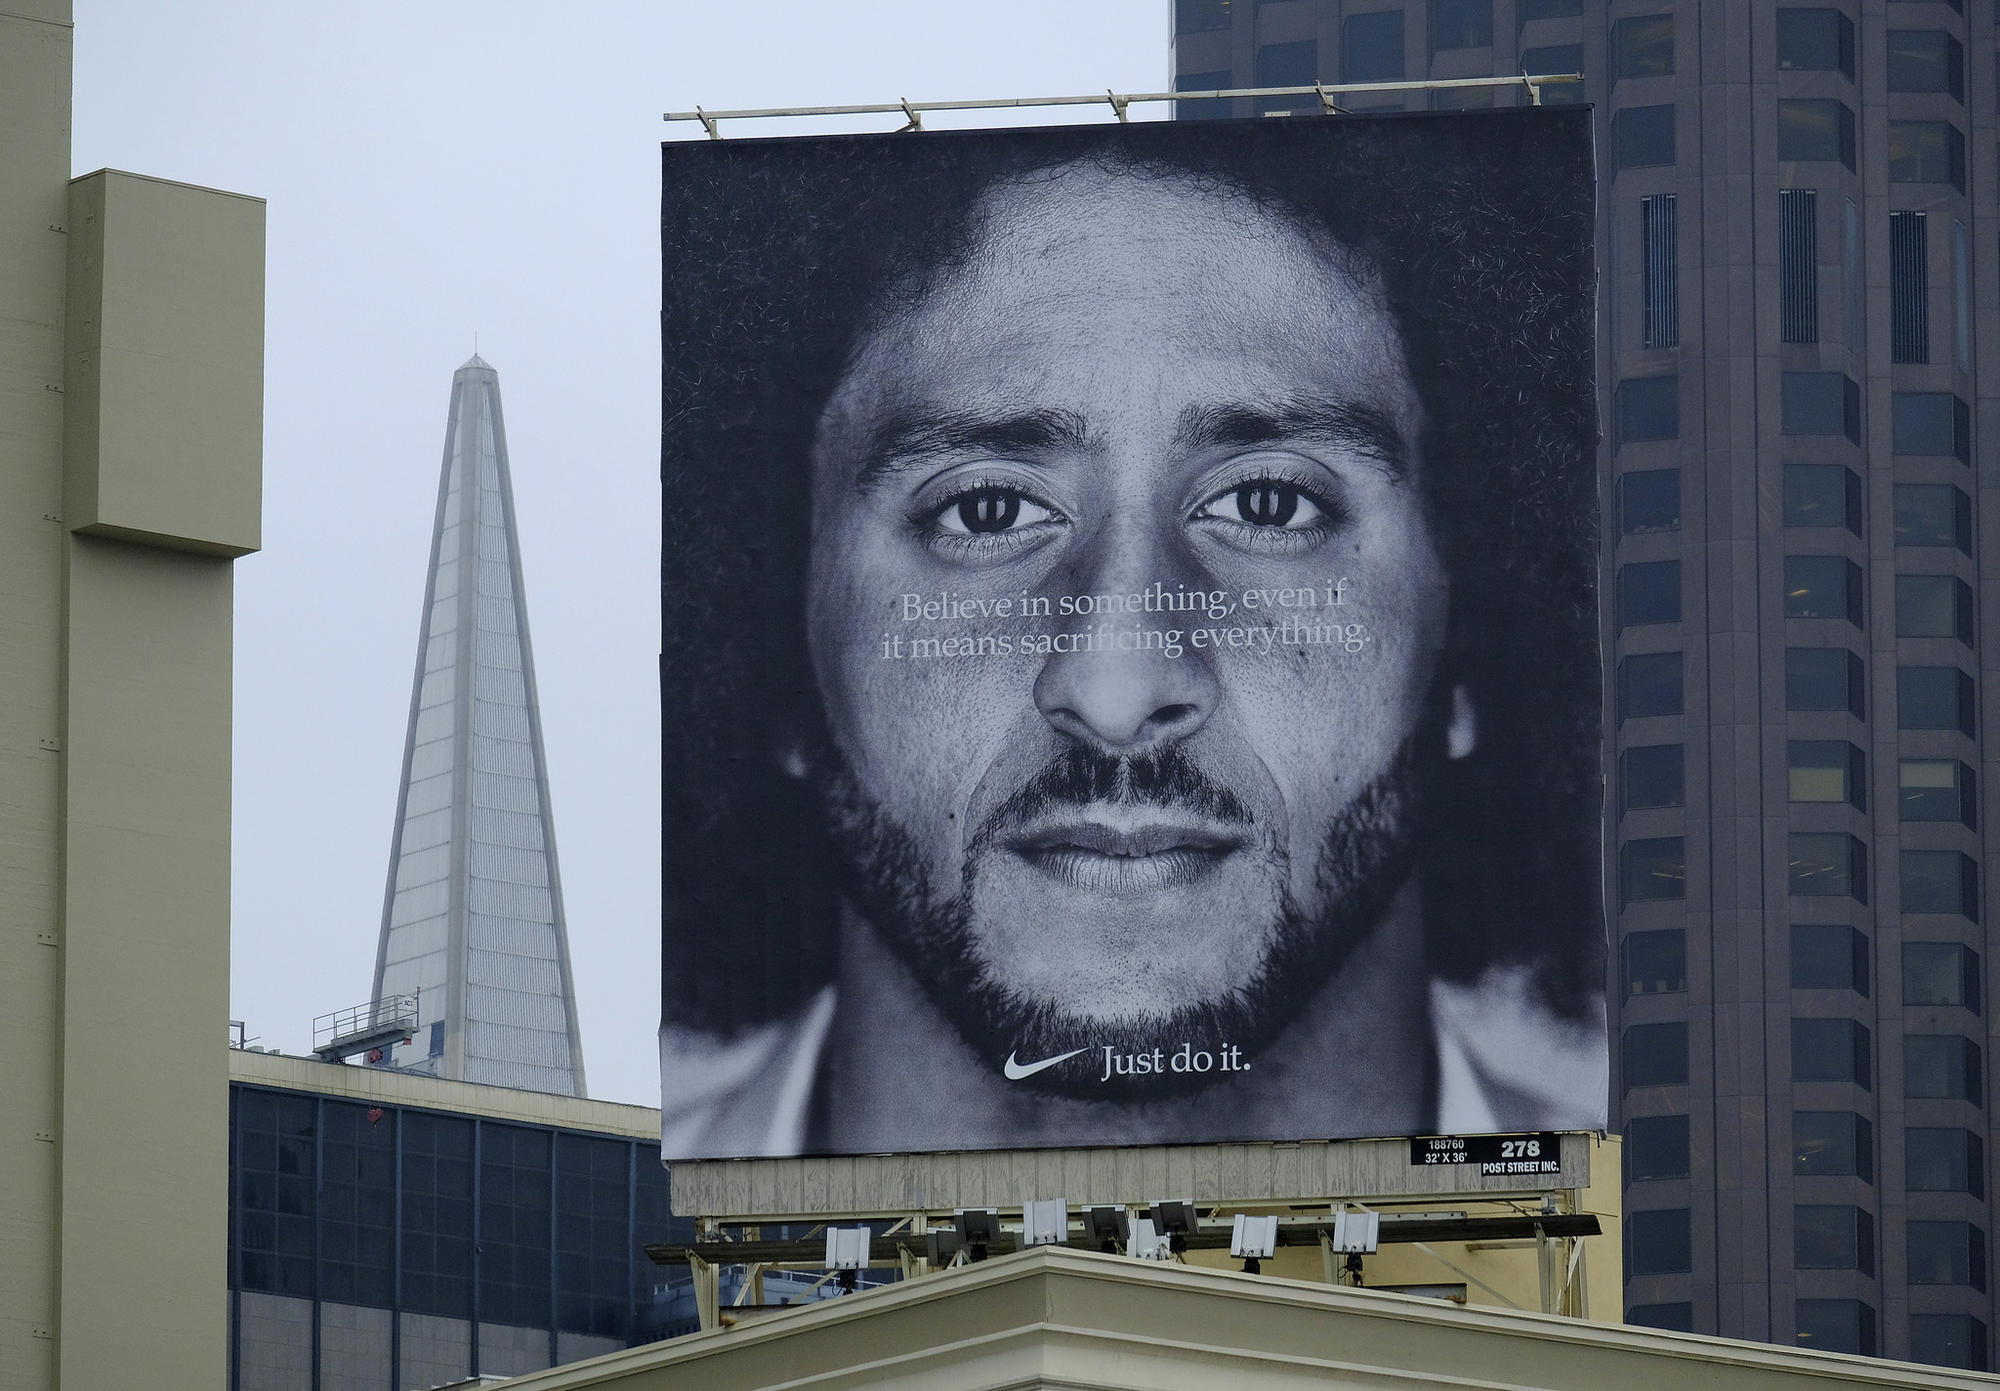 d3140694e393f Why Under Armour couldn't 'just do' a deal like Nike and Kaepernick -  Baltimore Sun